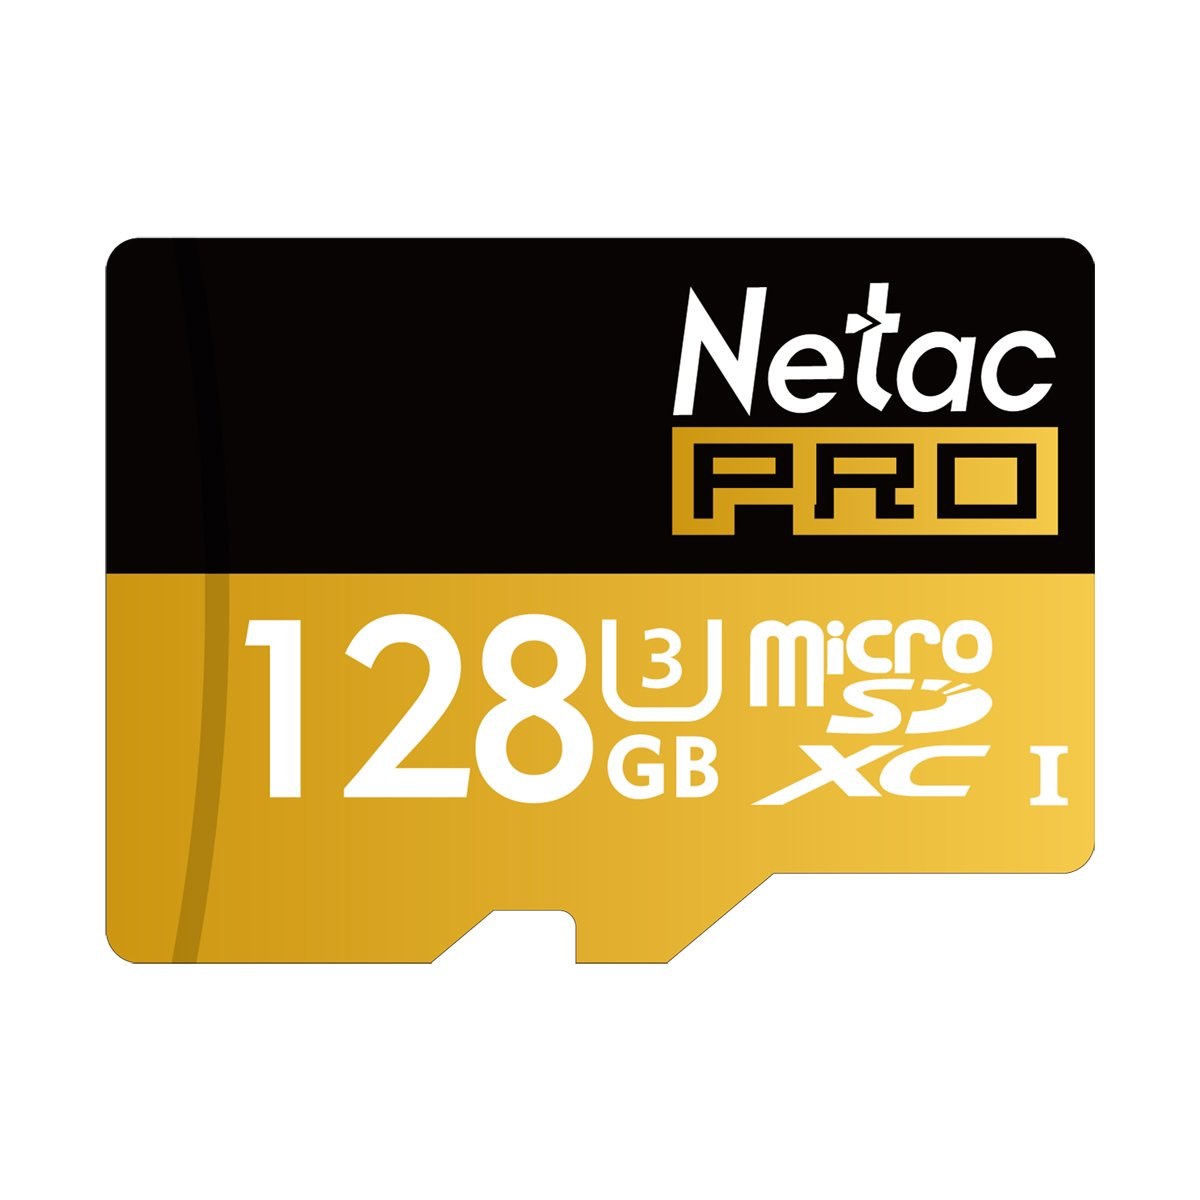 Netac 128GB Micro SD Card UHS I U3 Pro High Speed Micro SDXC TF Memory Card with Adapter